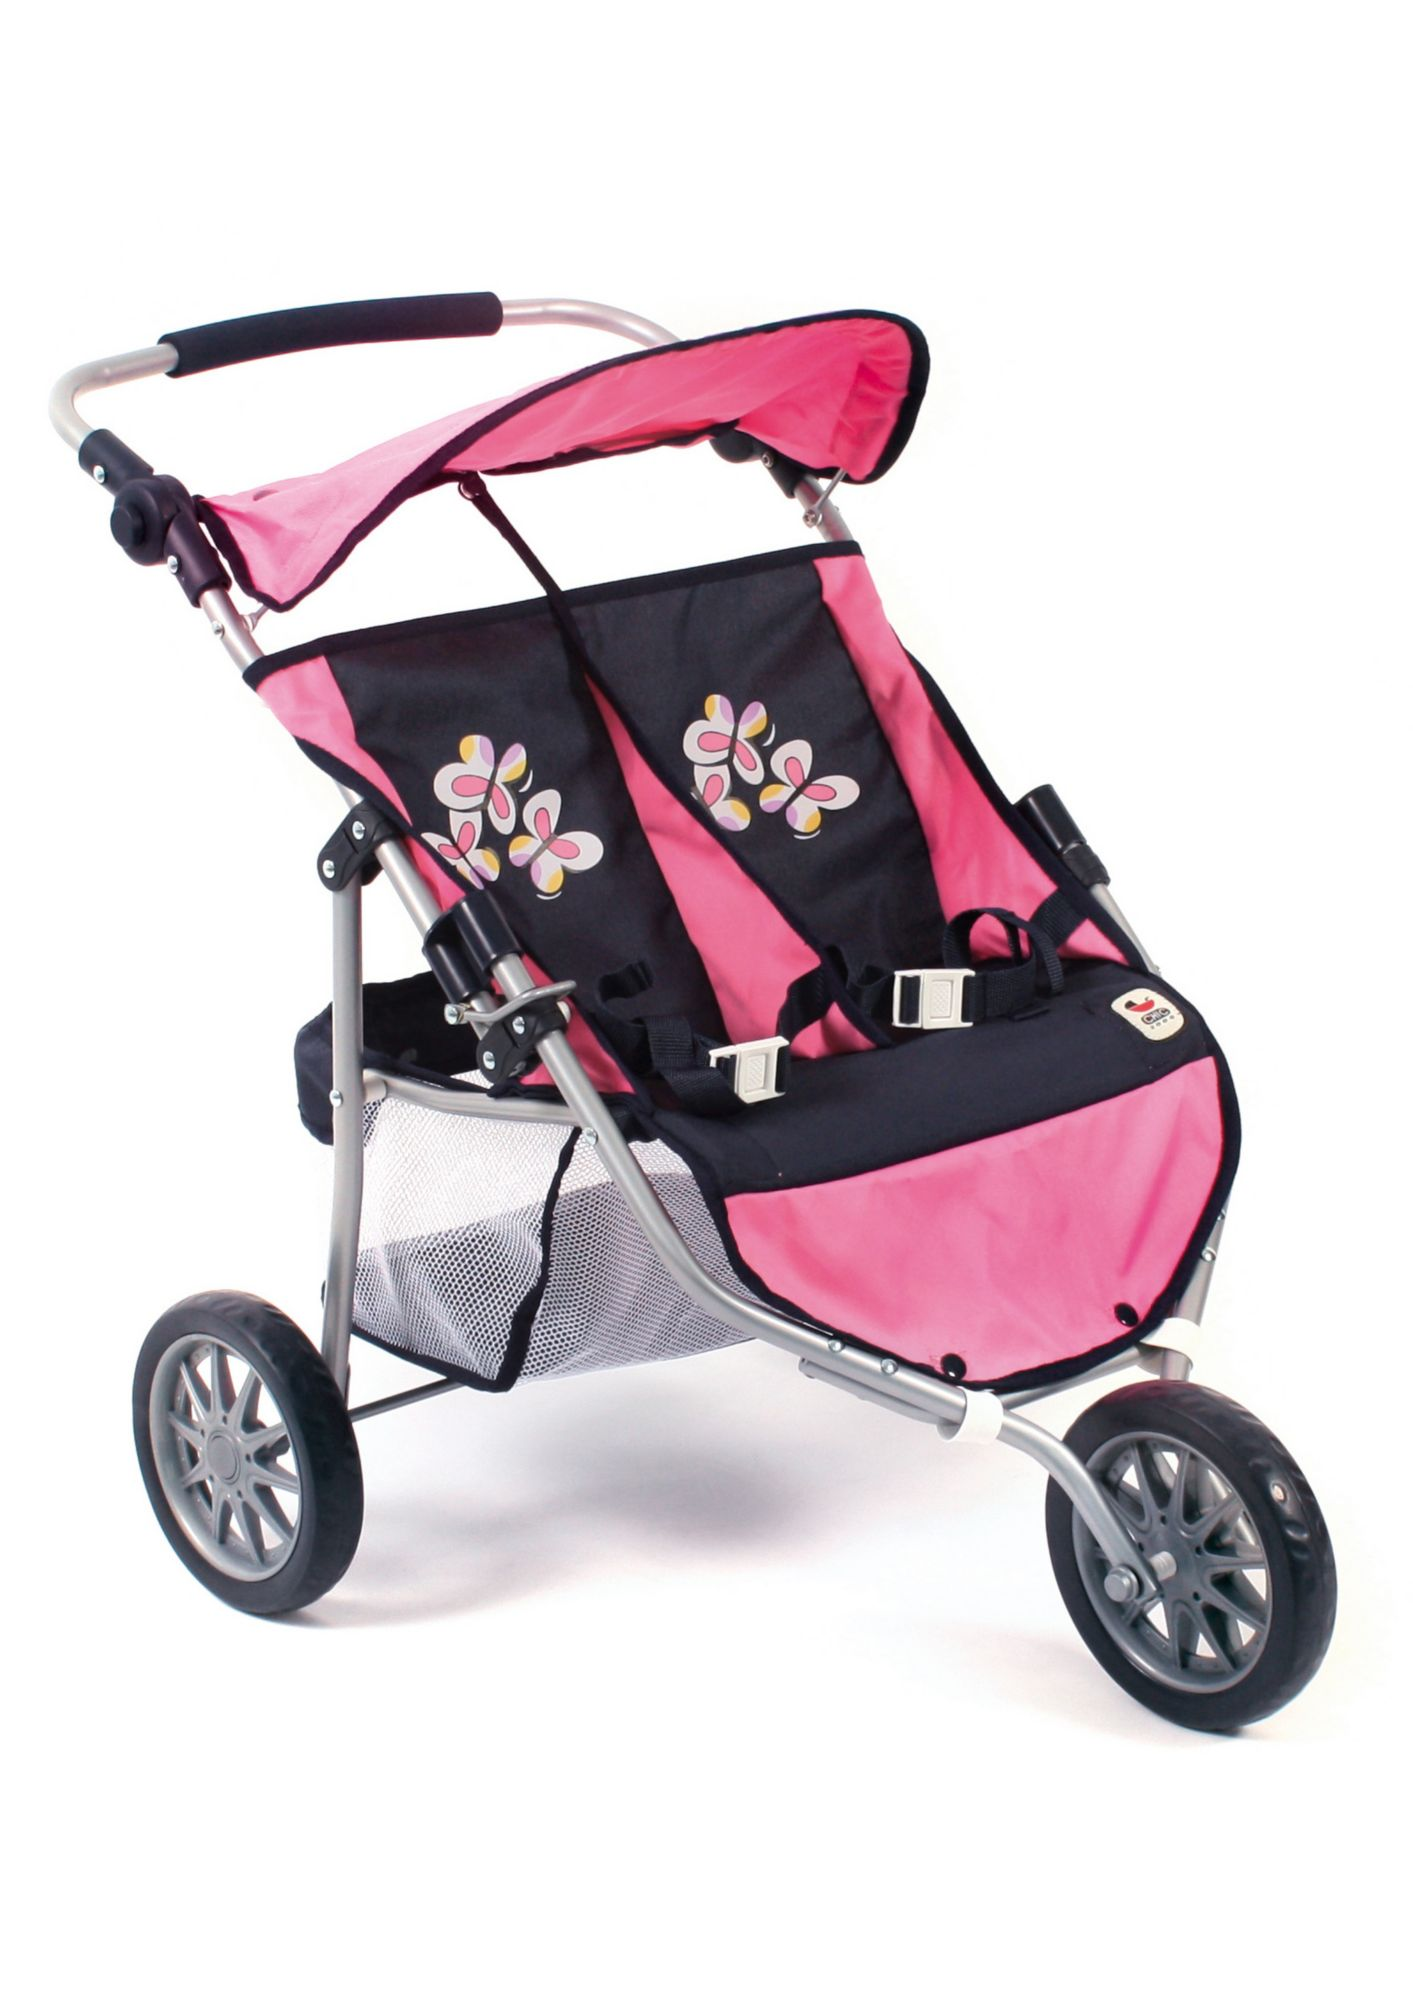 CHIC2000 CHIC 2000, 3-Rad-Puppen-Buggy »Zwillings-Jogger, pink checker«